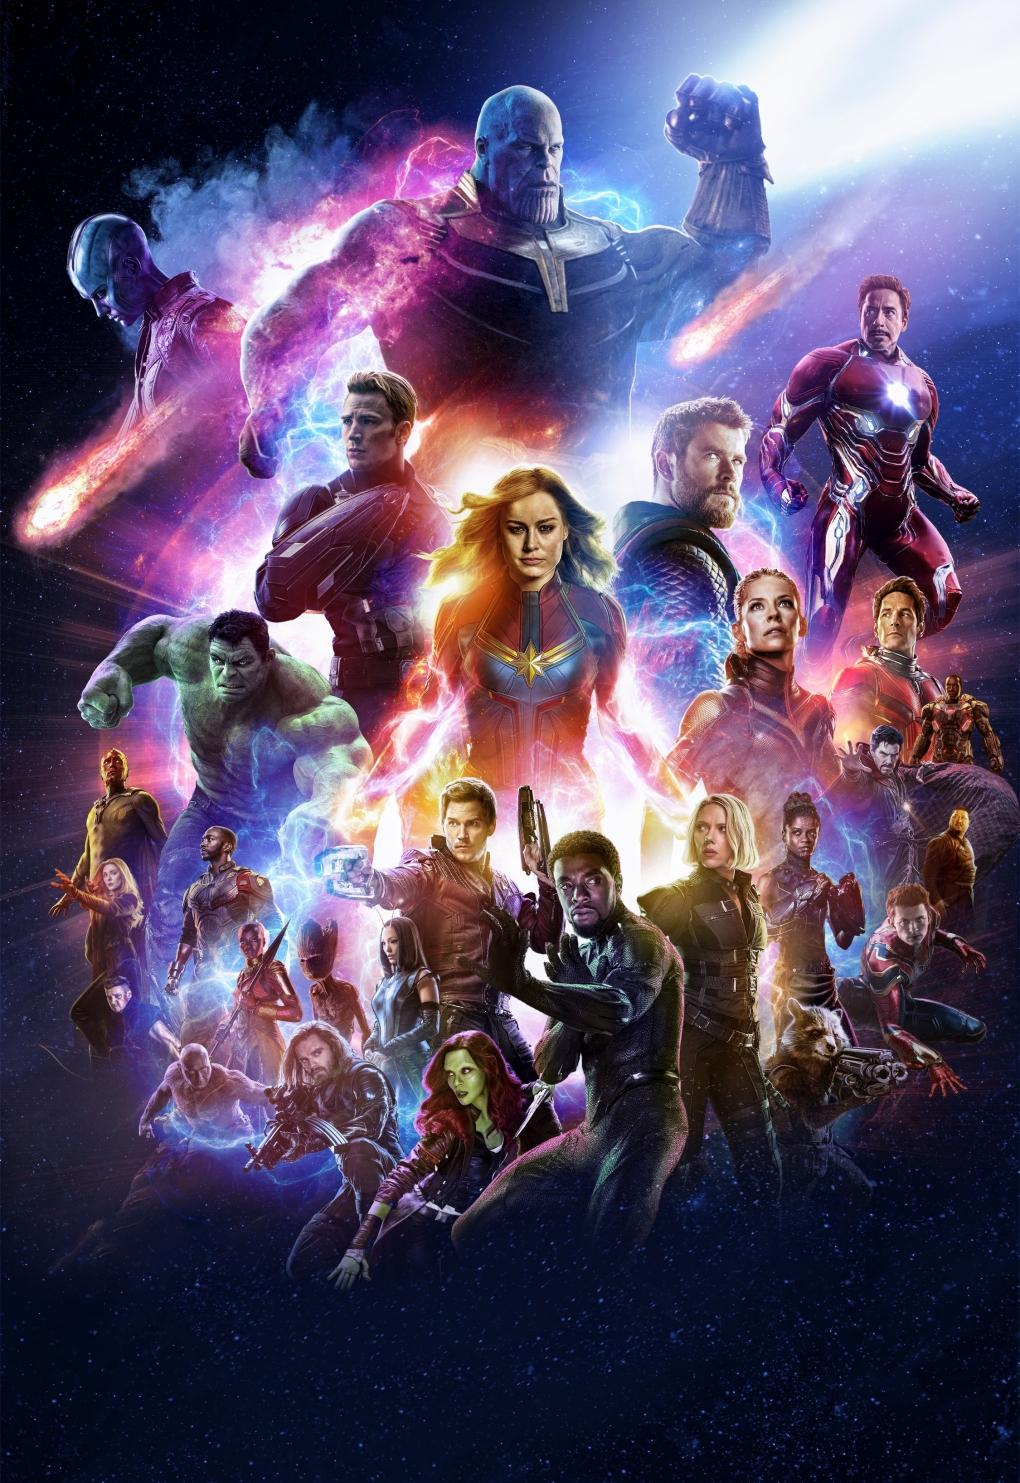 Far Et D'avengers Endgame Man Informations Spider Des L'intrigue Sur 8wkn0PO